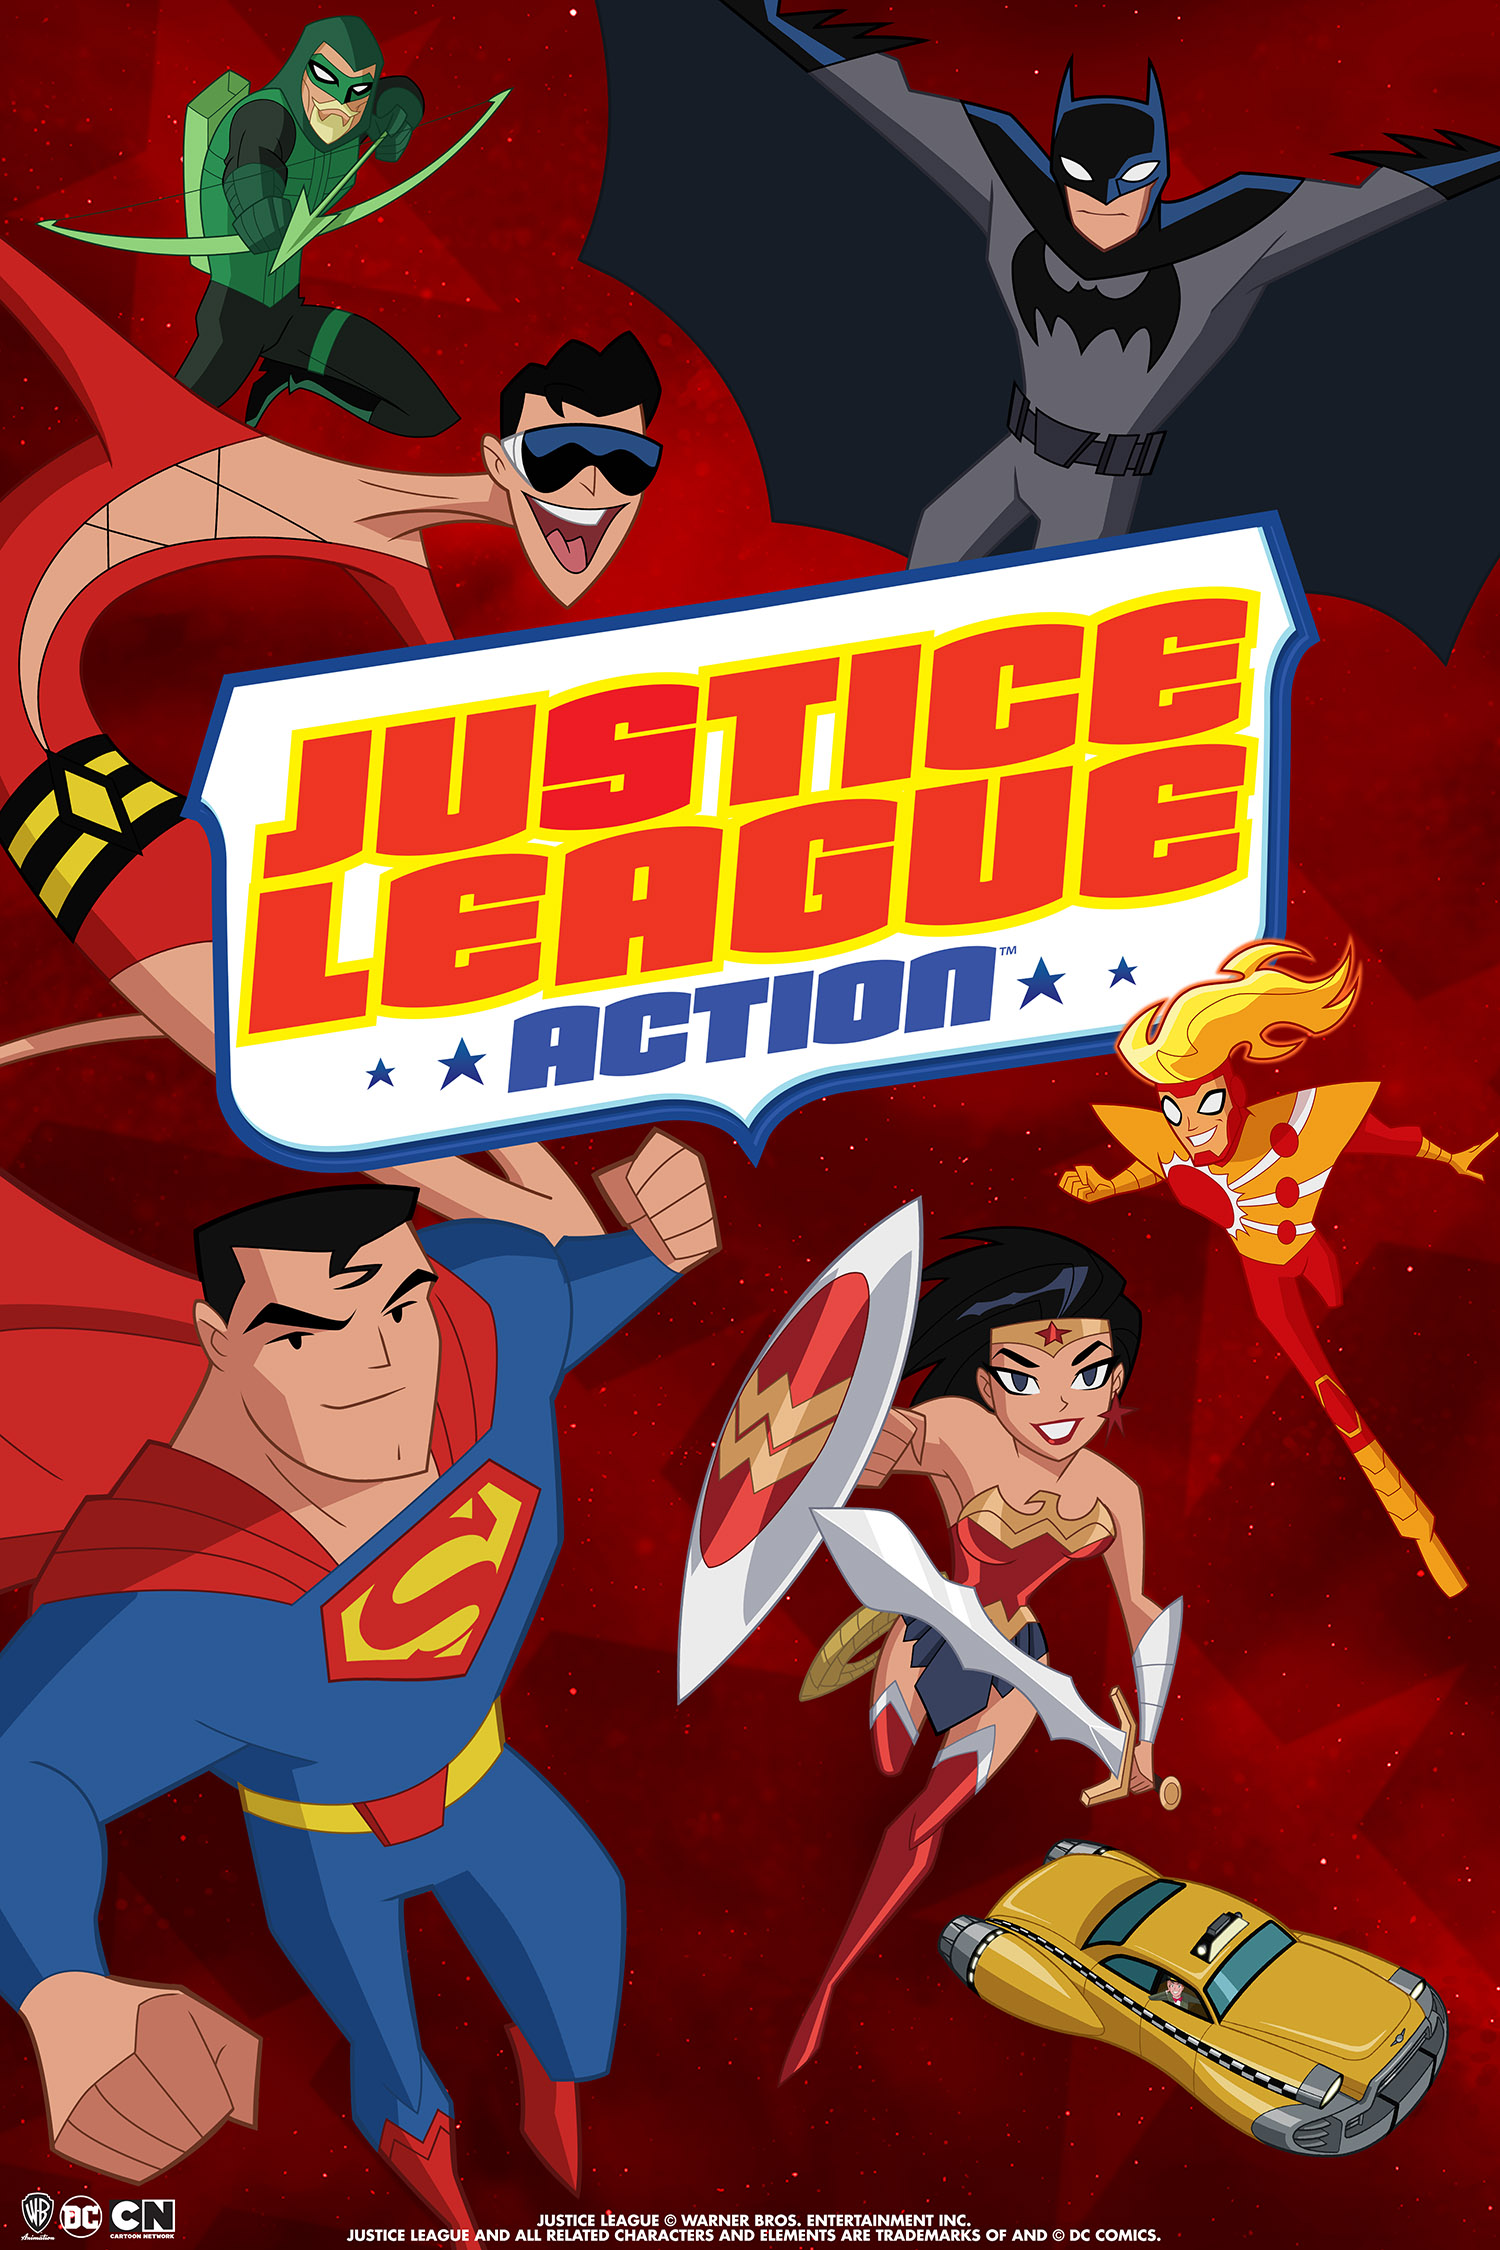 The Always Rotating Team Of Justice League Heroes Are Up To Any Challenge Produced By Warner Bros Animation And Based On Characters From DC